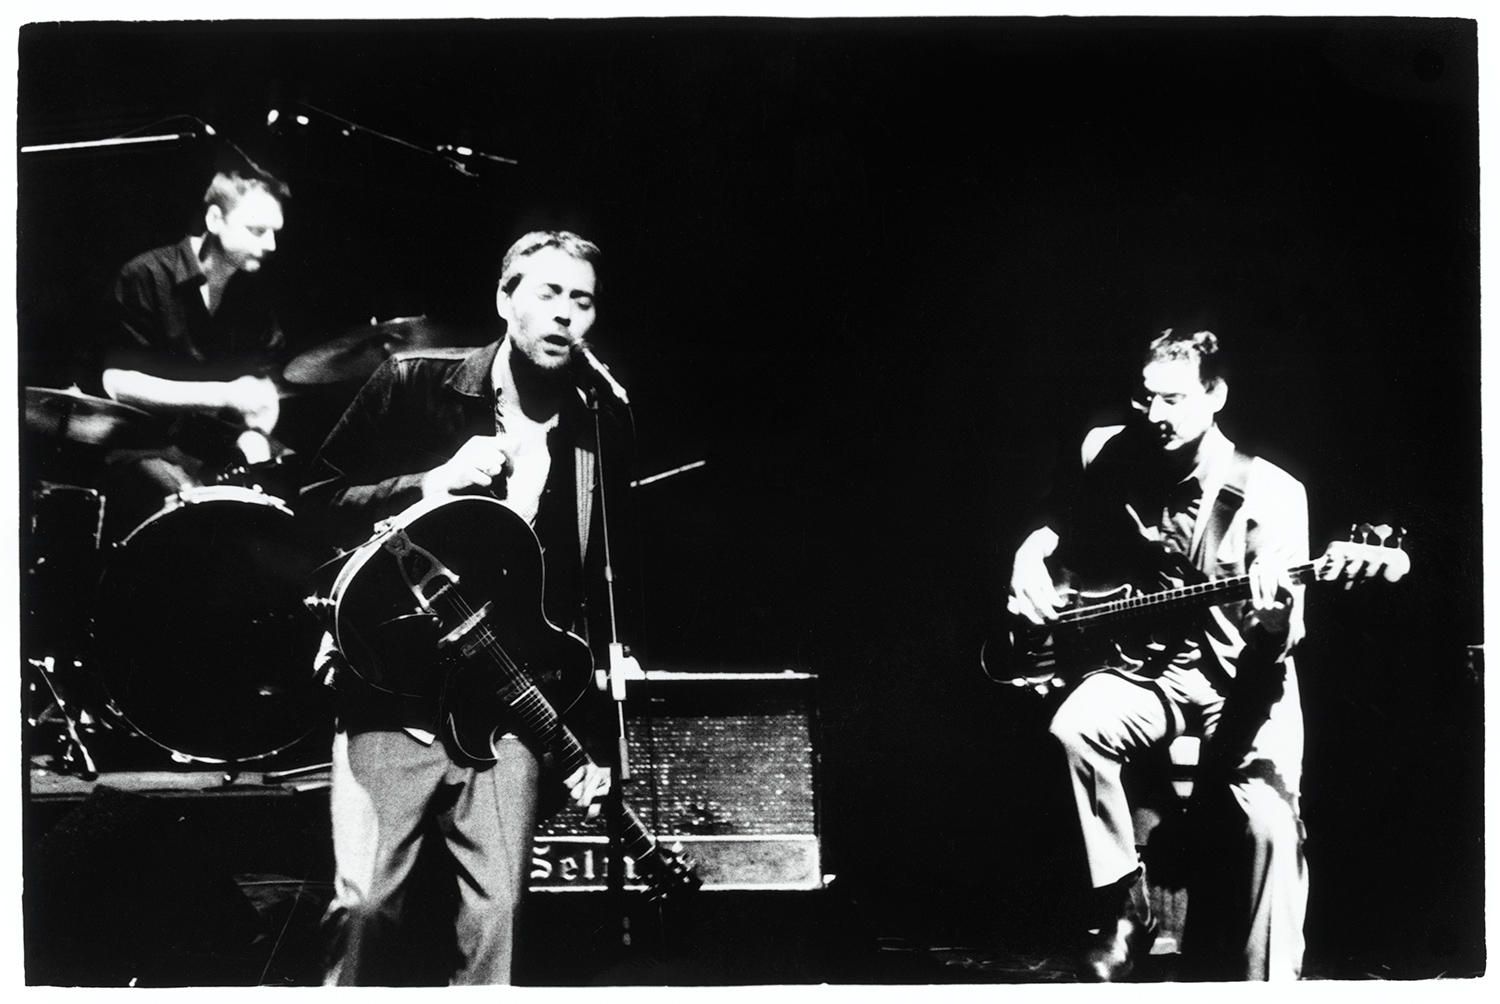 Tindersticks by Laurent Orseau - Beaubourg - Paris, France - 2001-05-19 #5